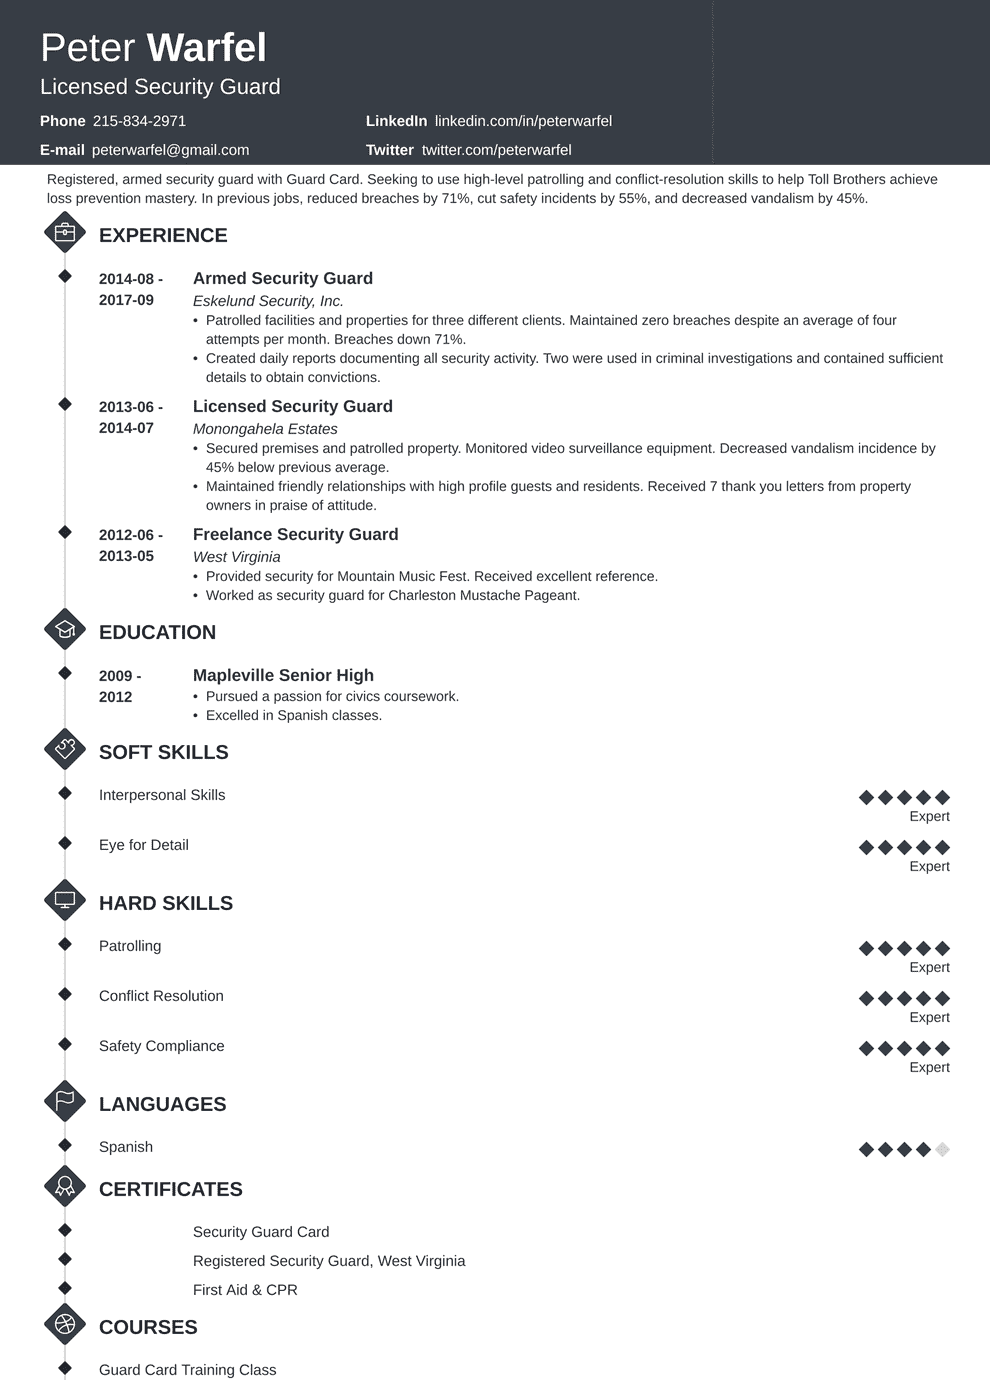 Security Guard Resume Examples | Security Guard Resume Sample And Complete Guide 20 Expert